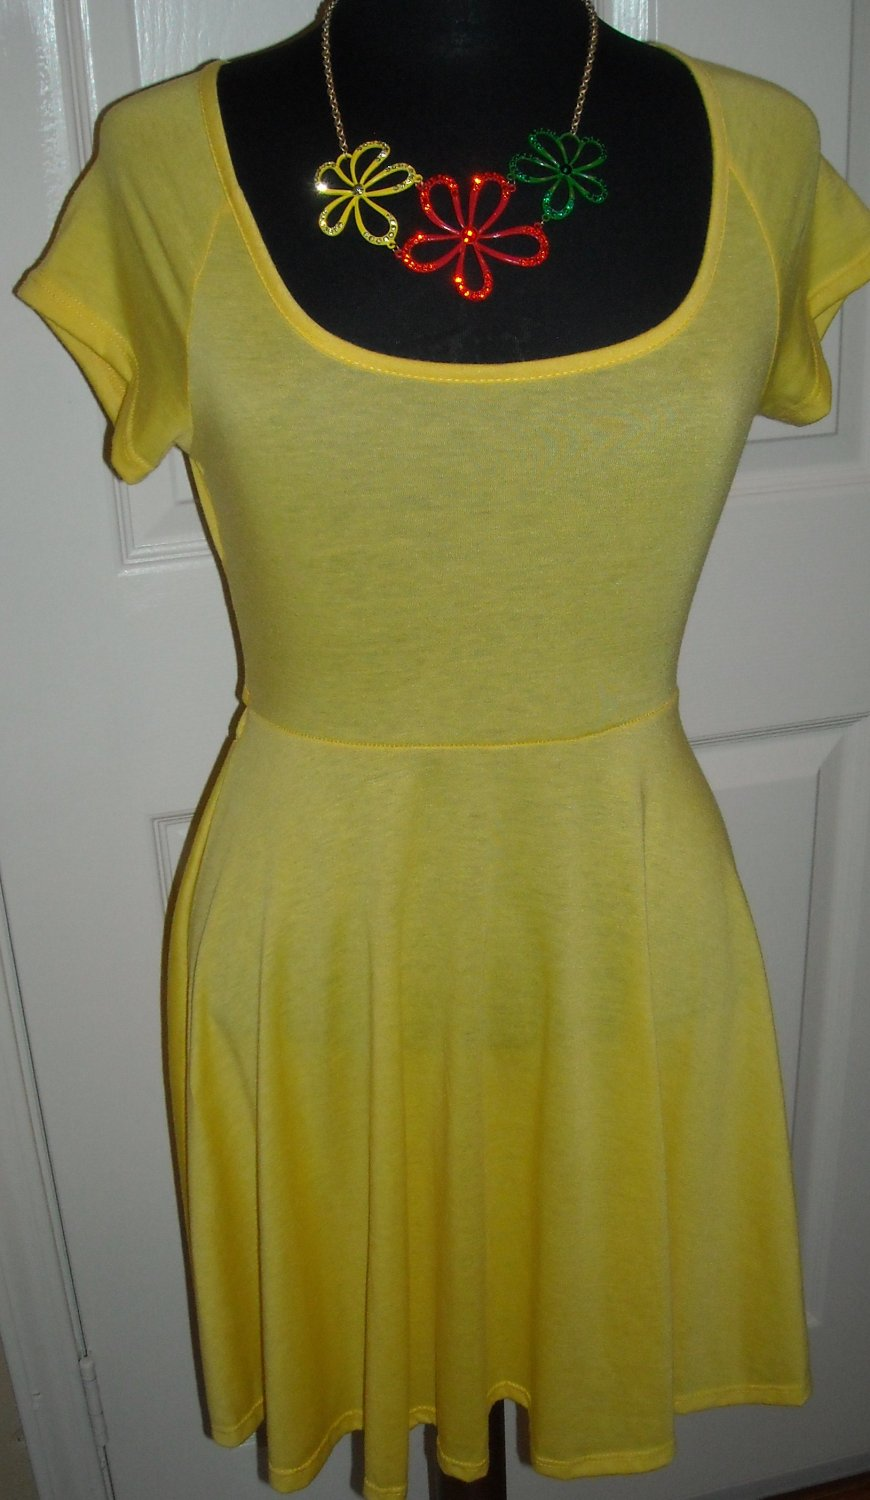 URBAN ROSE VINTAGE SHORT YELLOW DRESS SIZE L (NEW)